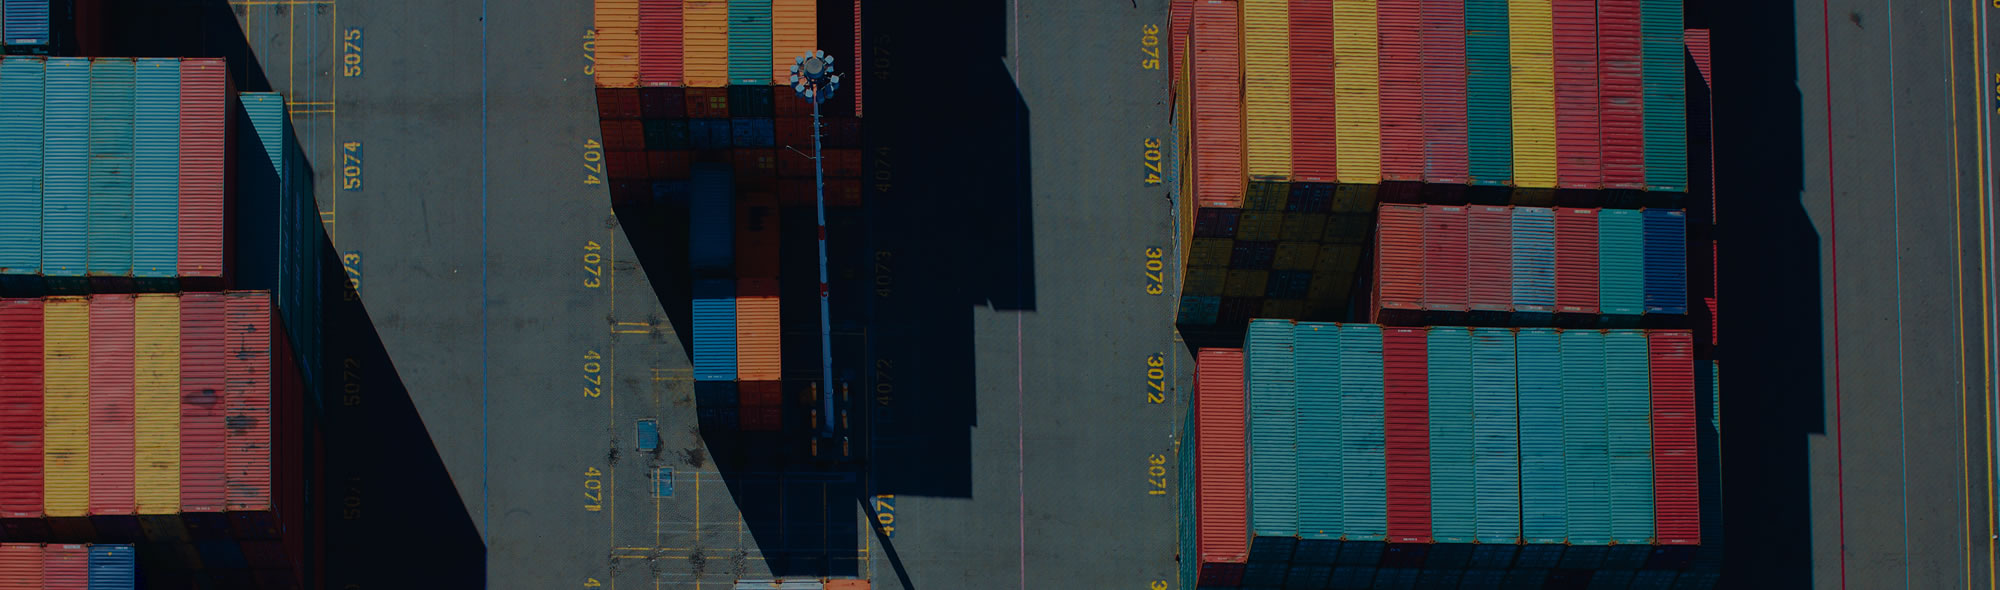 Aerial view of shipyard showing shipping containers.